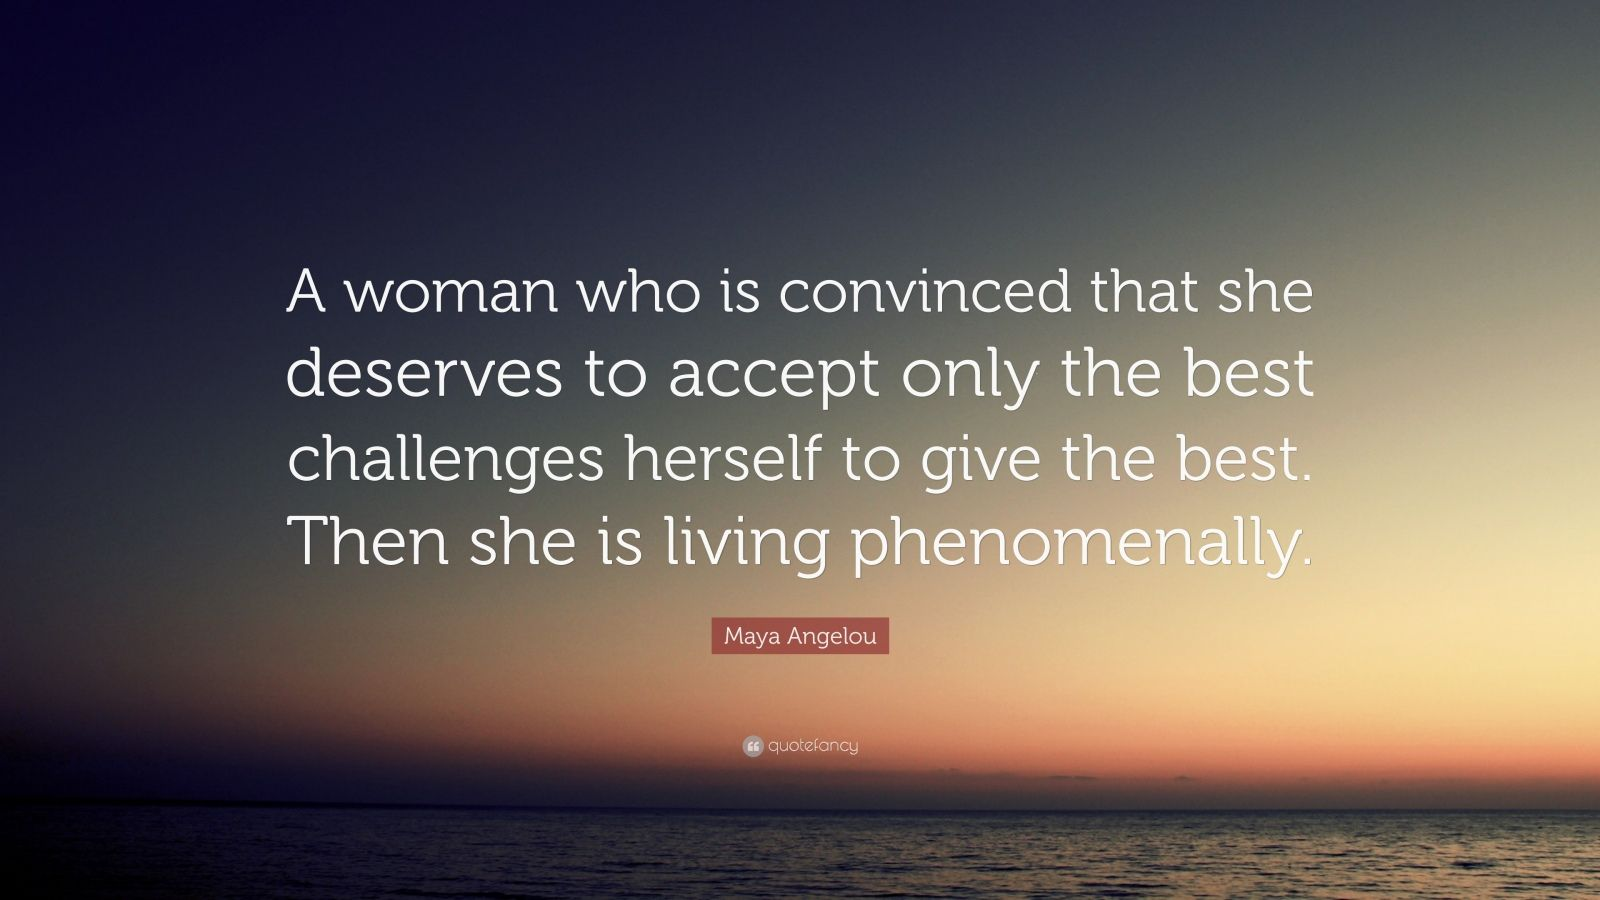 """Maya Angelou Quote: """"A woman who is convinced that she deserves to accept only the best challenges herself to give the best. Then she is living phenomenally."""""""